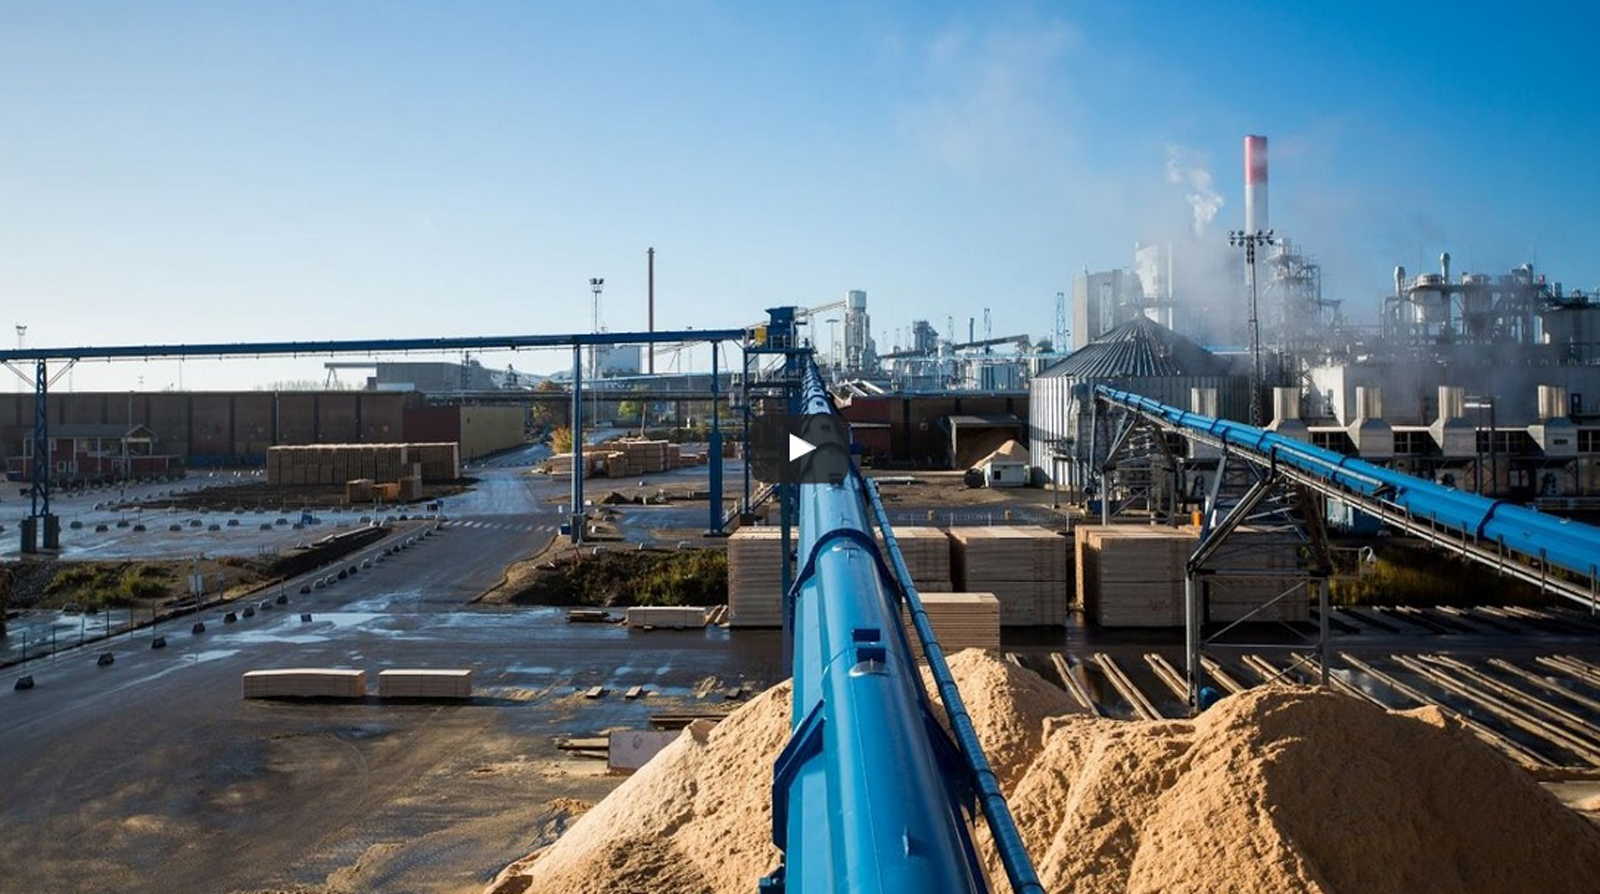 Vecoplan: Conveying Technology for Dust-Free Transportation of Bulk Solids